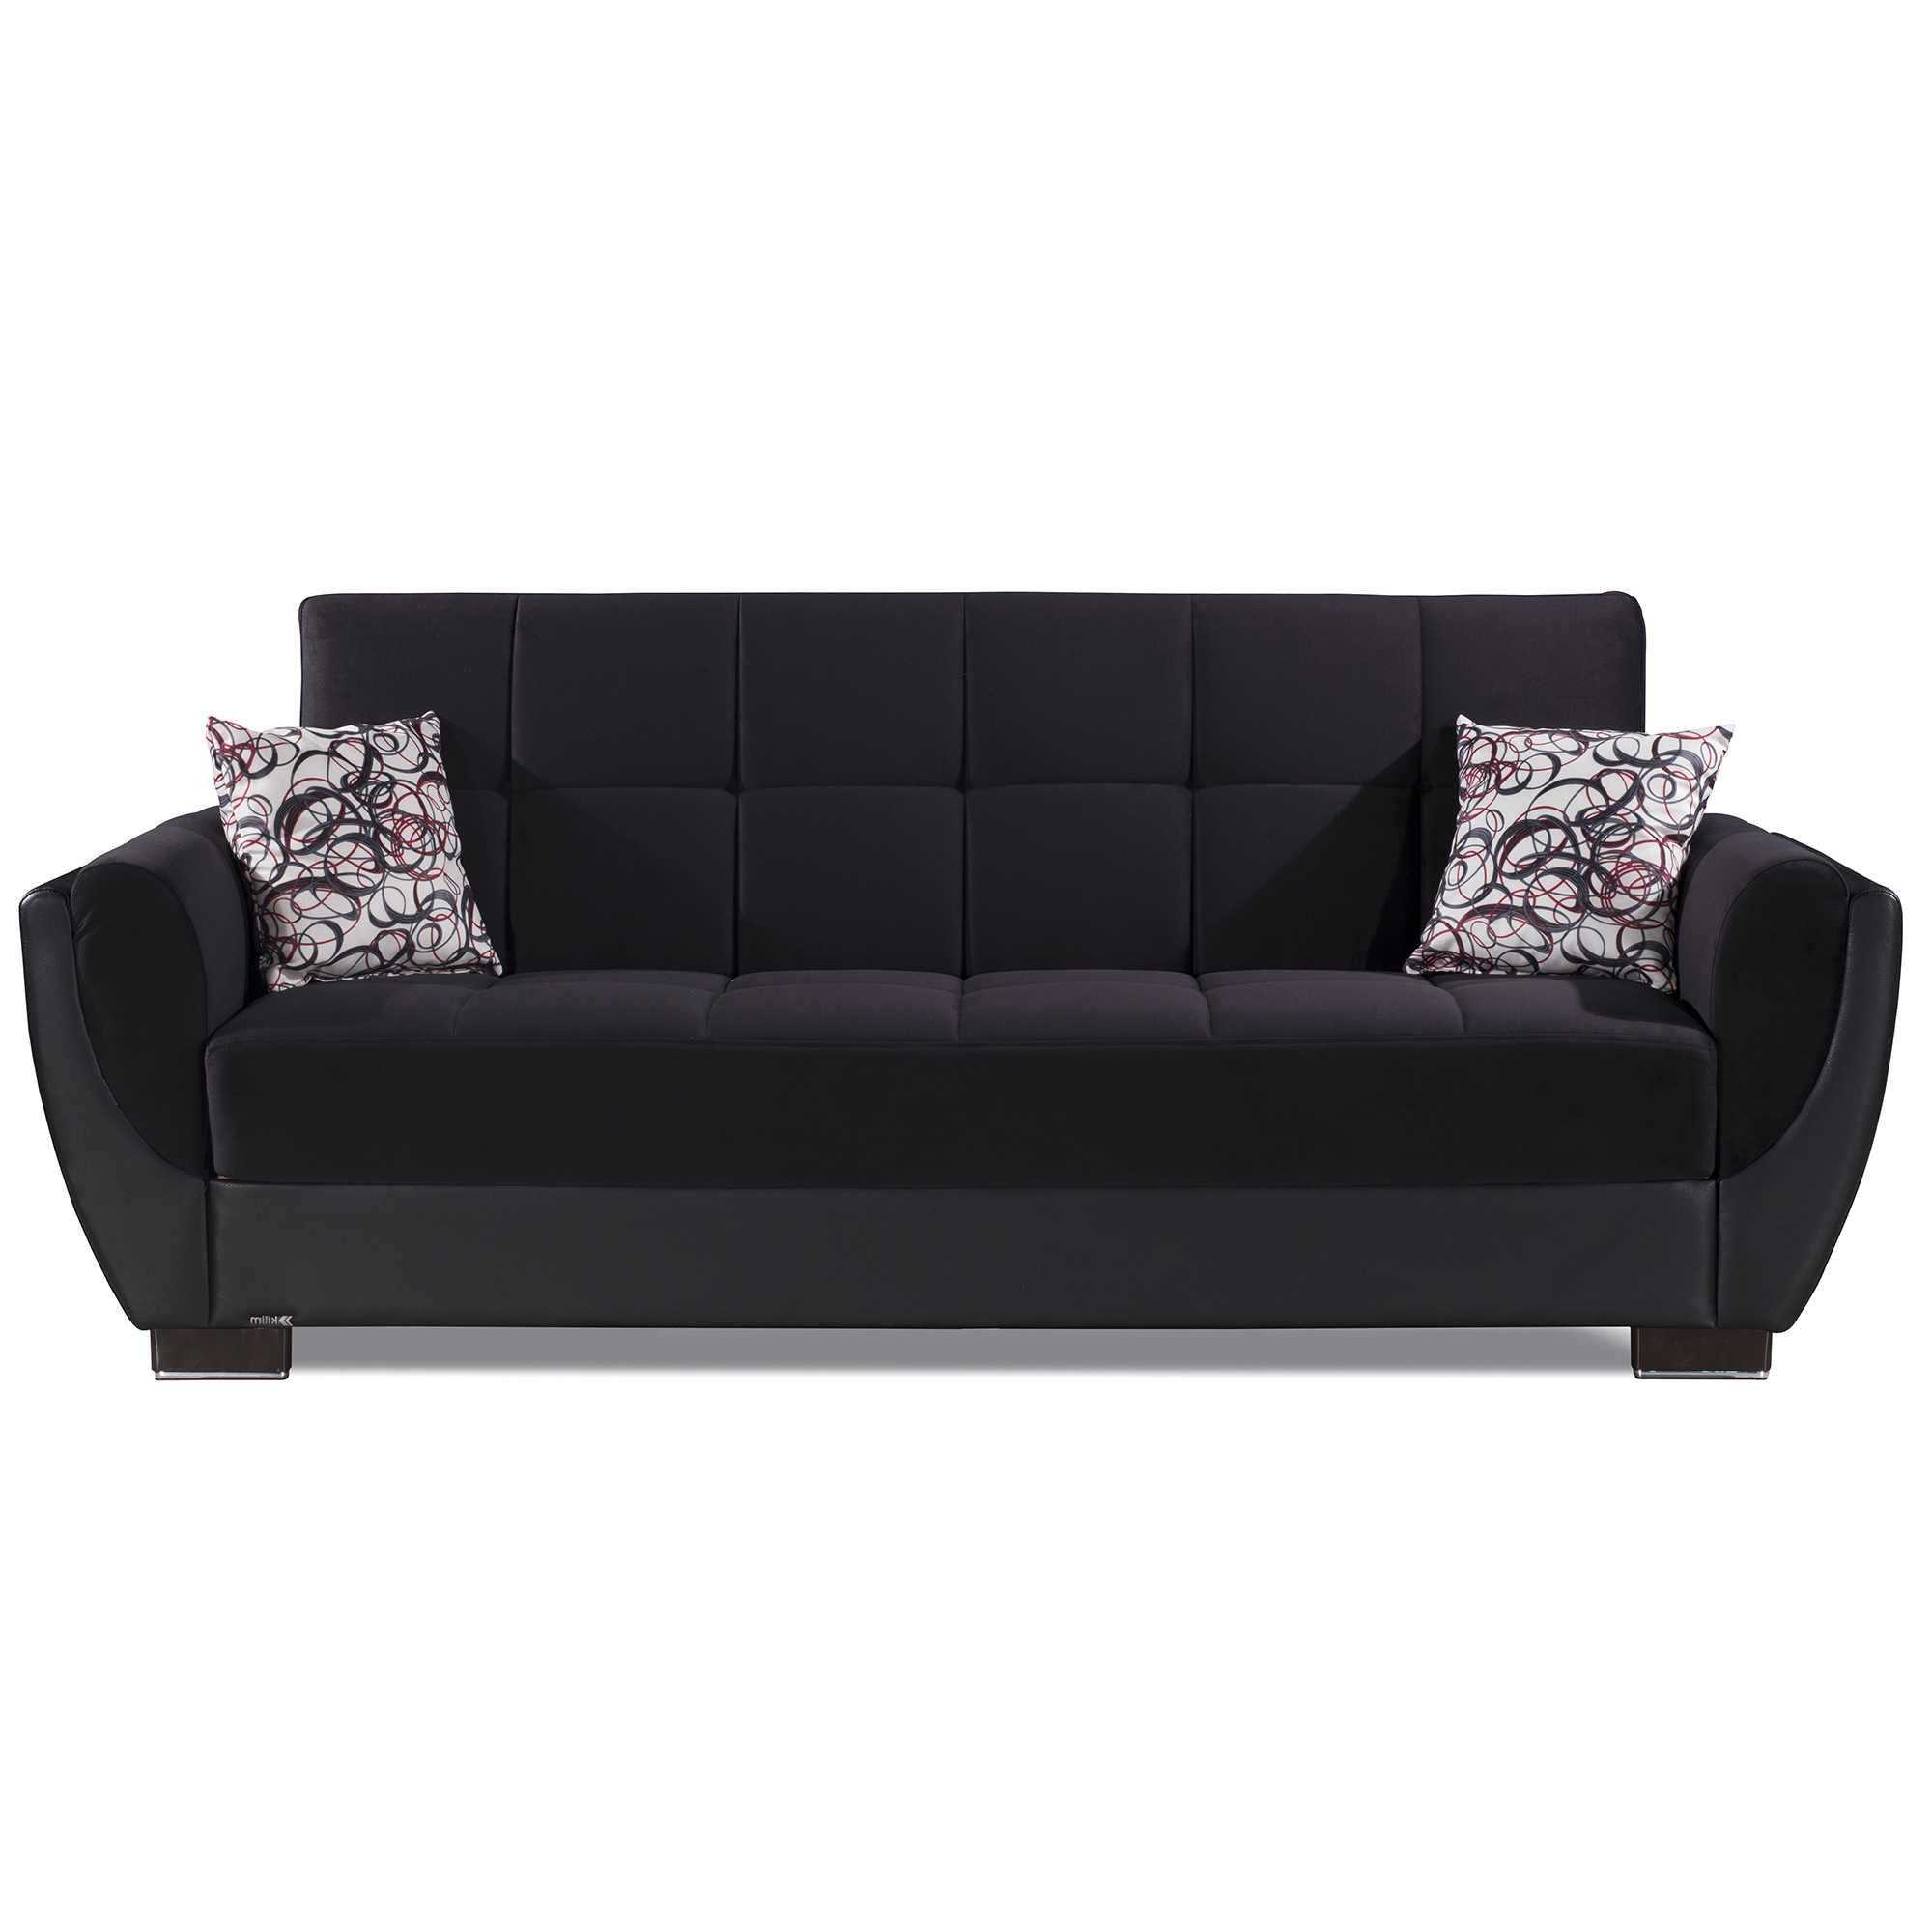 Ottomanson Armada Air Fabric Upholstery Sleeper Sofa Bed Inside Most Recent Prato Storage Sectional Futon Sofas (View 6 of 25)